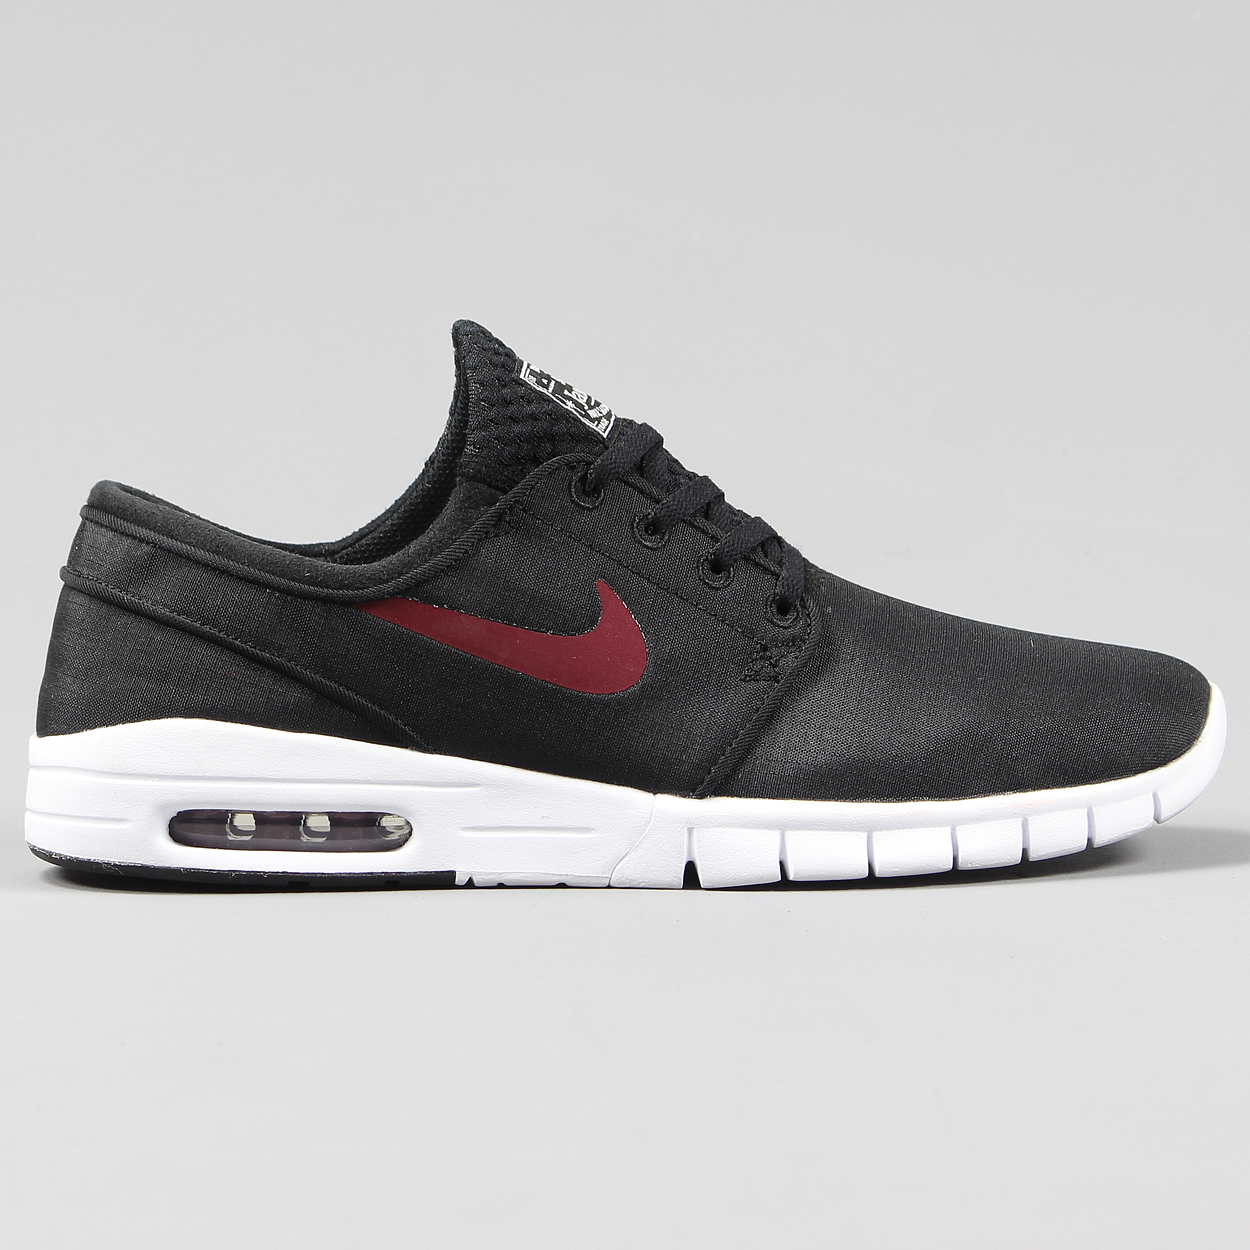 online retailer 14d5d 984ad Nike SB Stefan Janoski Max Mens Shoes Black Uppers Red White £67.50